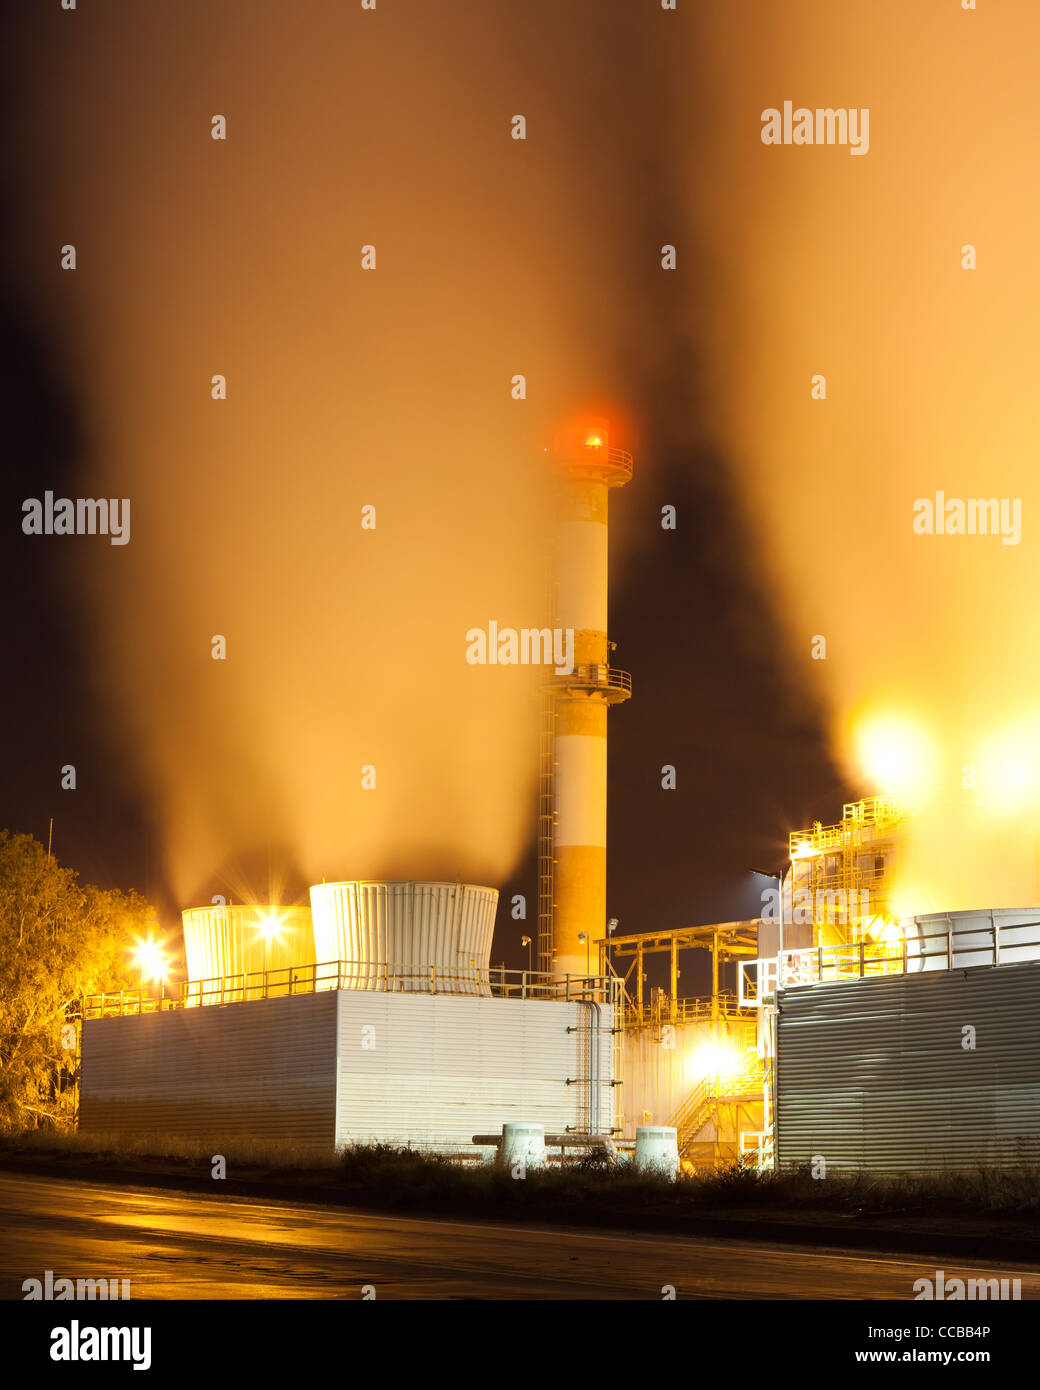 Industrial cooling tower - Stock Image